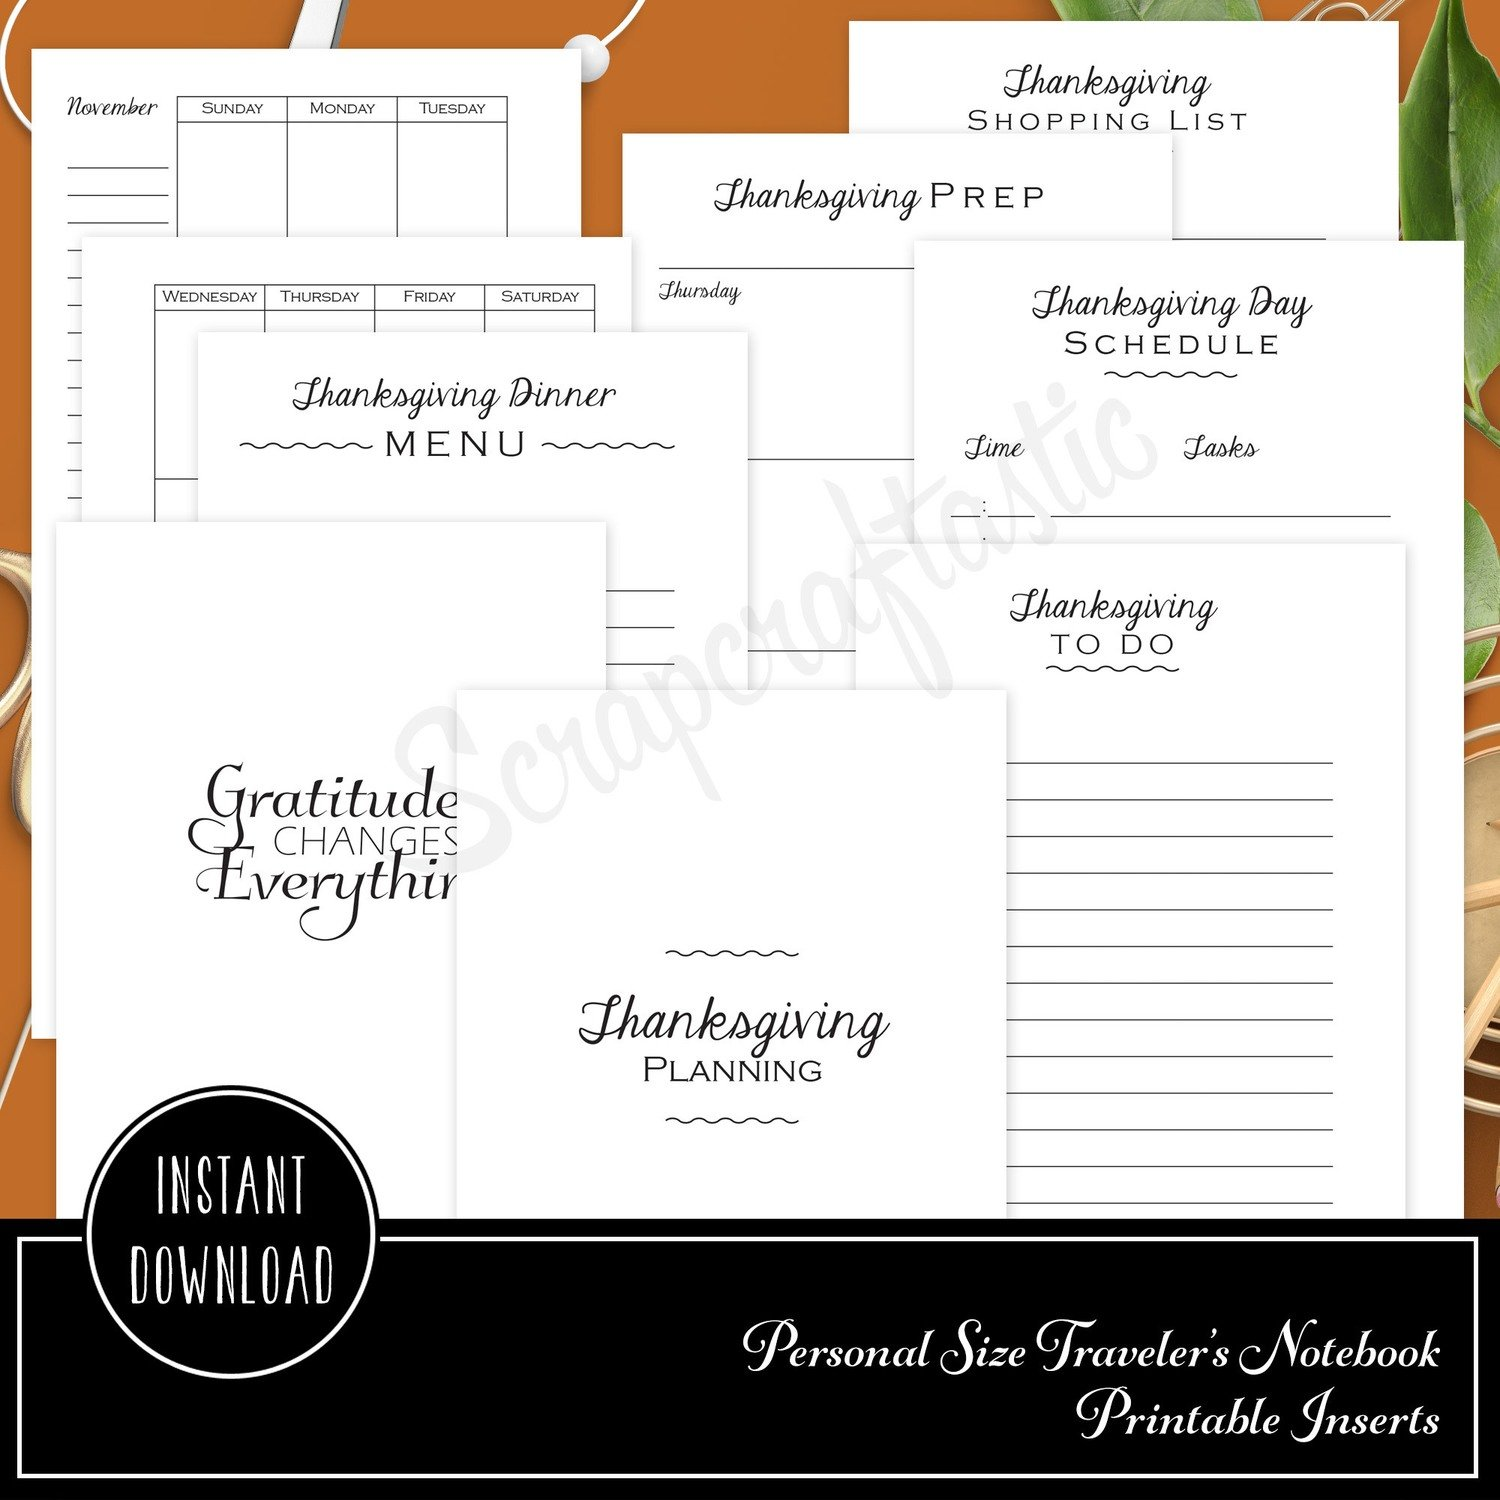 graphic regarding Thanksgiving Planner Printable identify Thanksgiving Coming up with Printable Person Dimension Planner or Organizer Inserts for Filofax, Kikki K